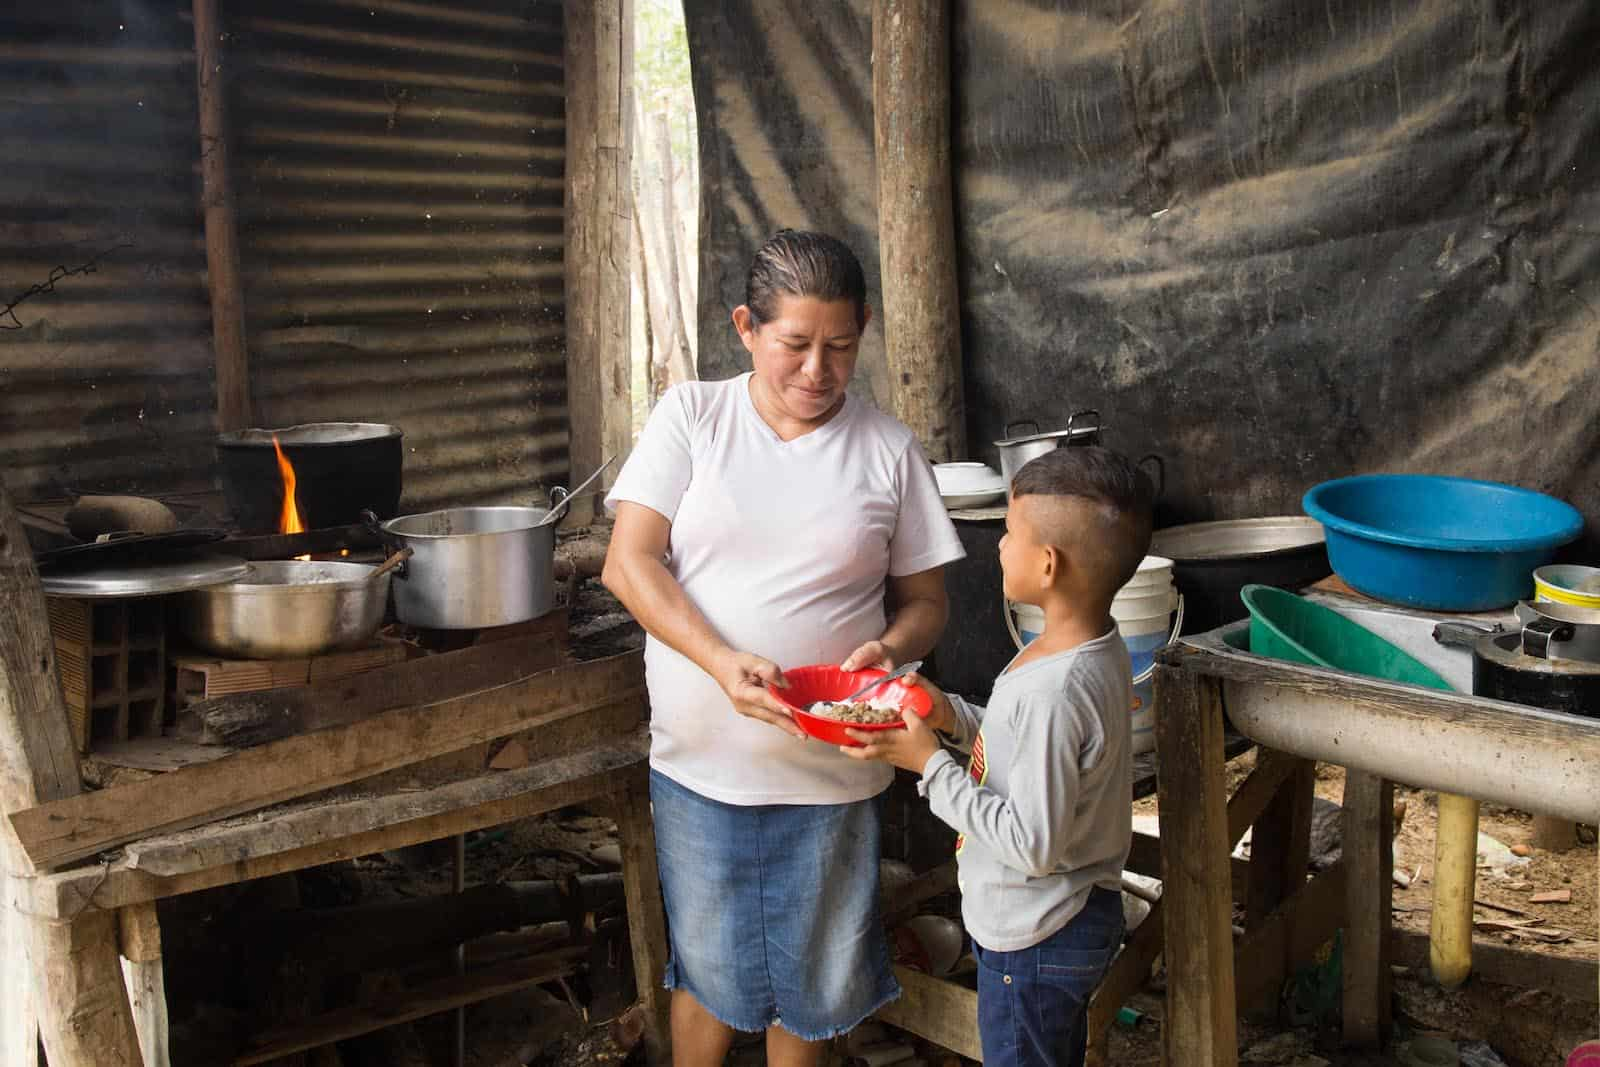 A woman stands in a kitchen handing a bowl of food to a boy.